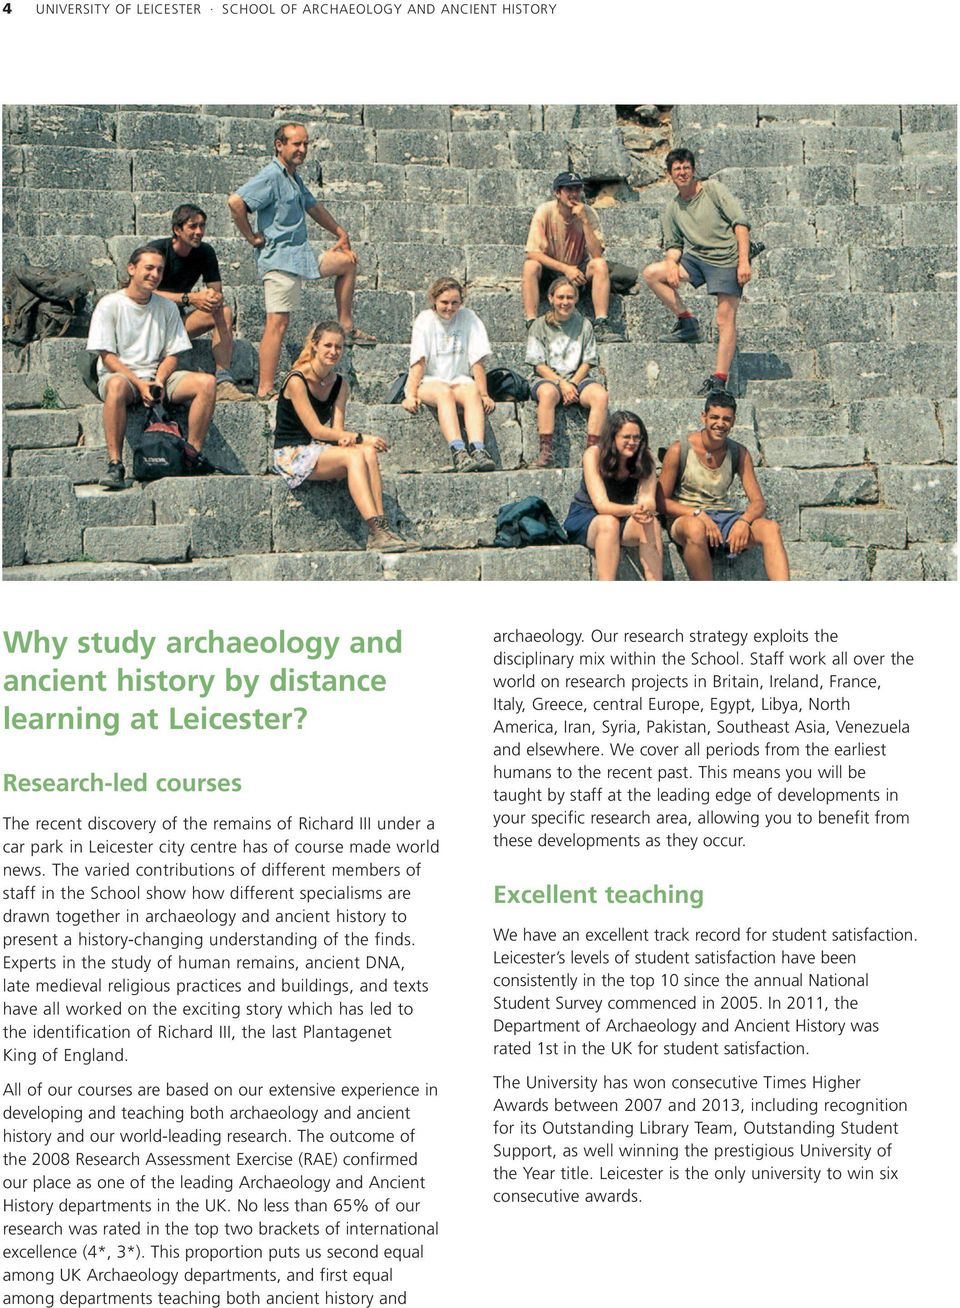 The varied contributions of different members of staff in the School show how different specialisms are drawn together in archaeology and ancient history to present a history-changing understanding